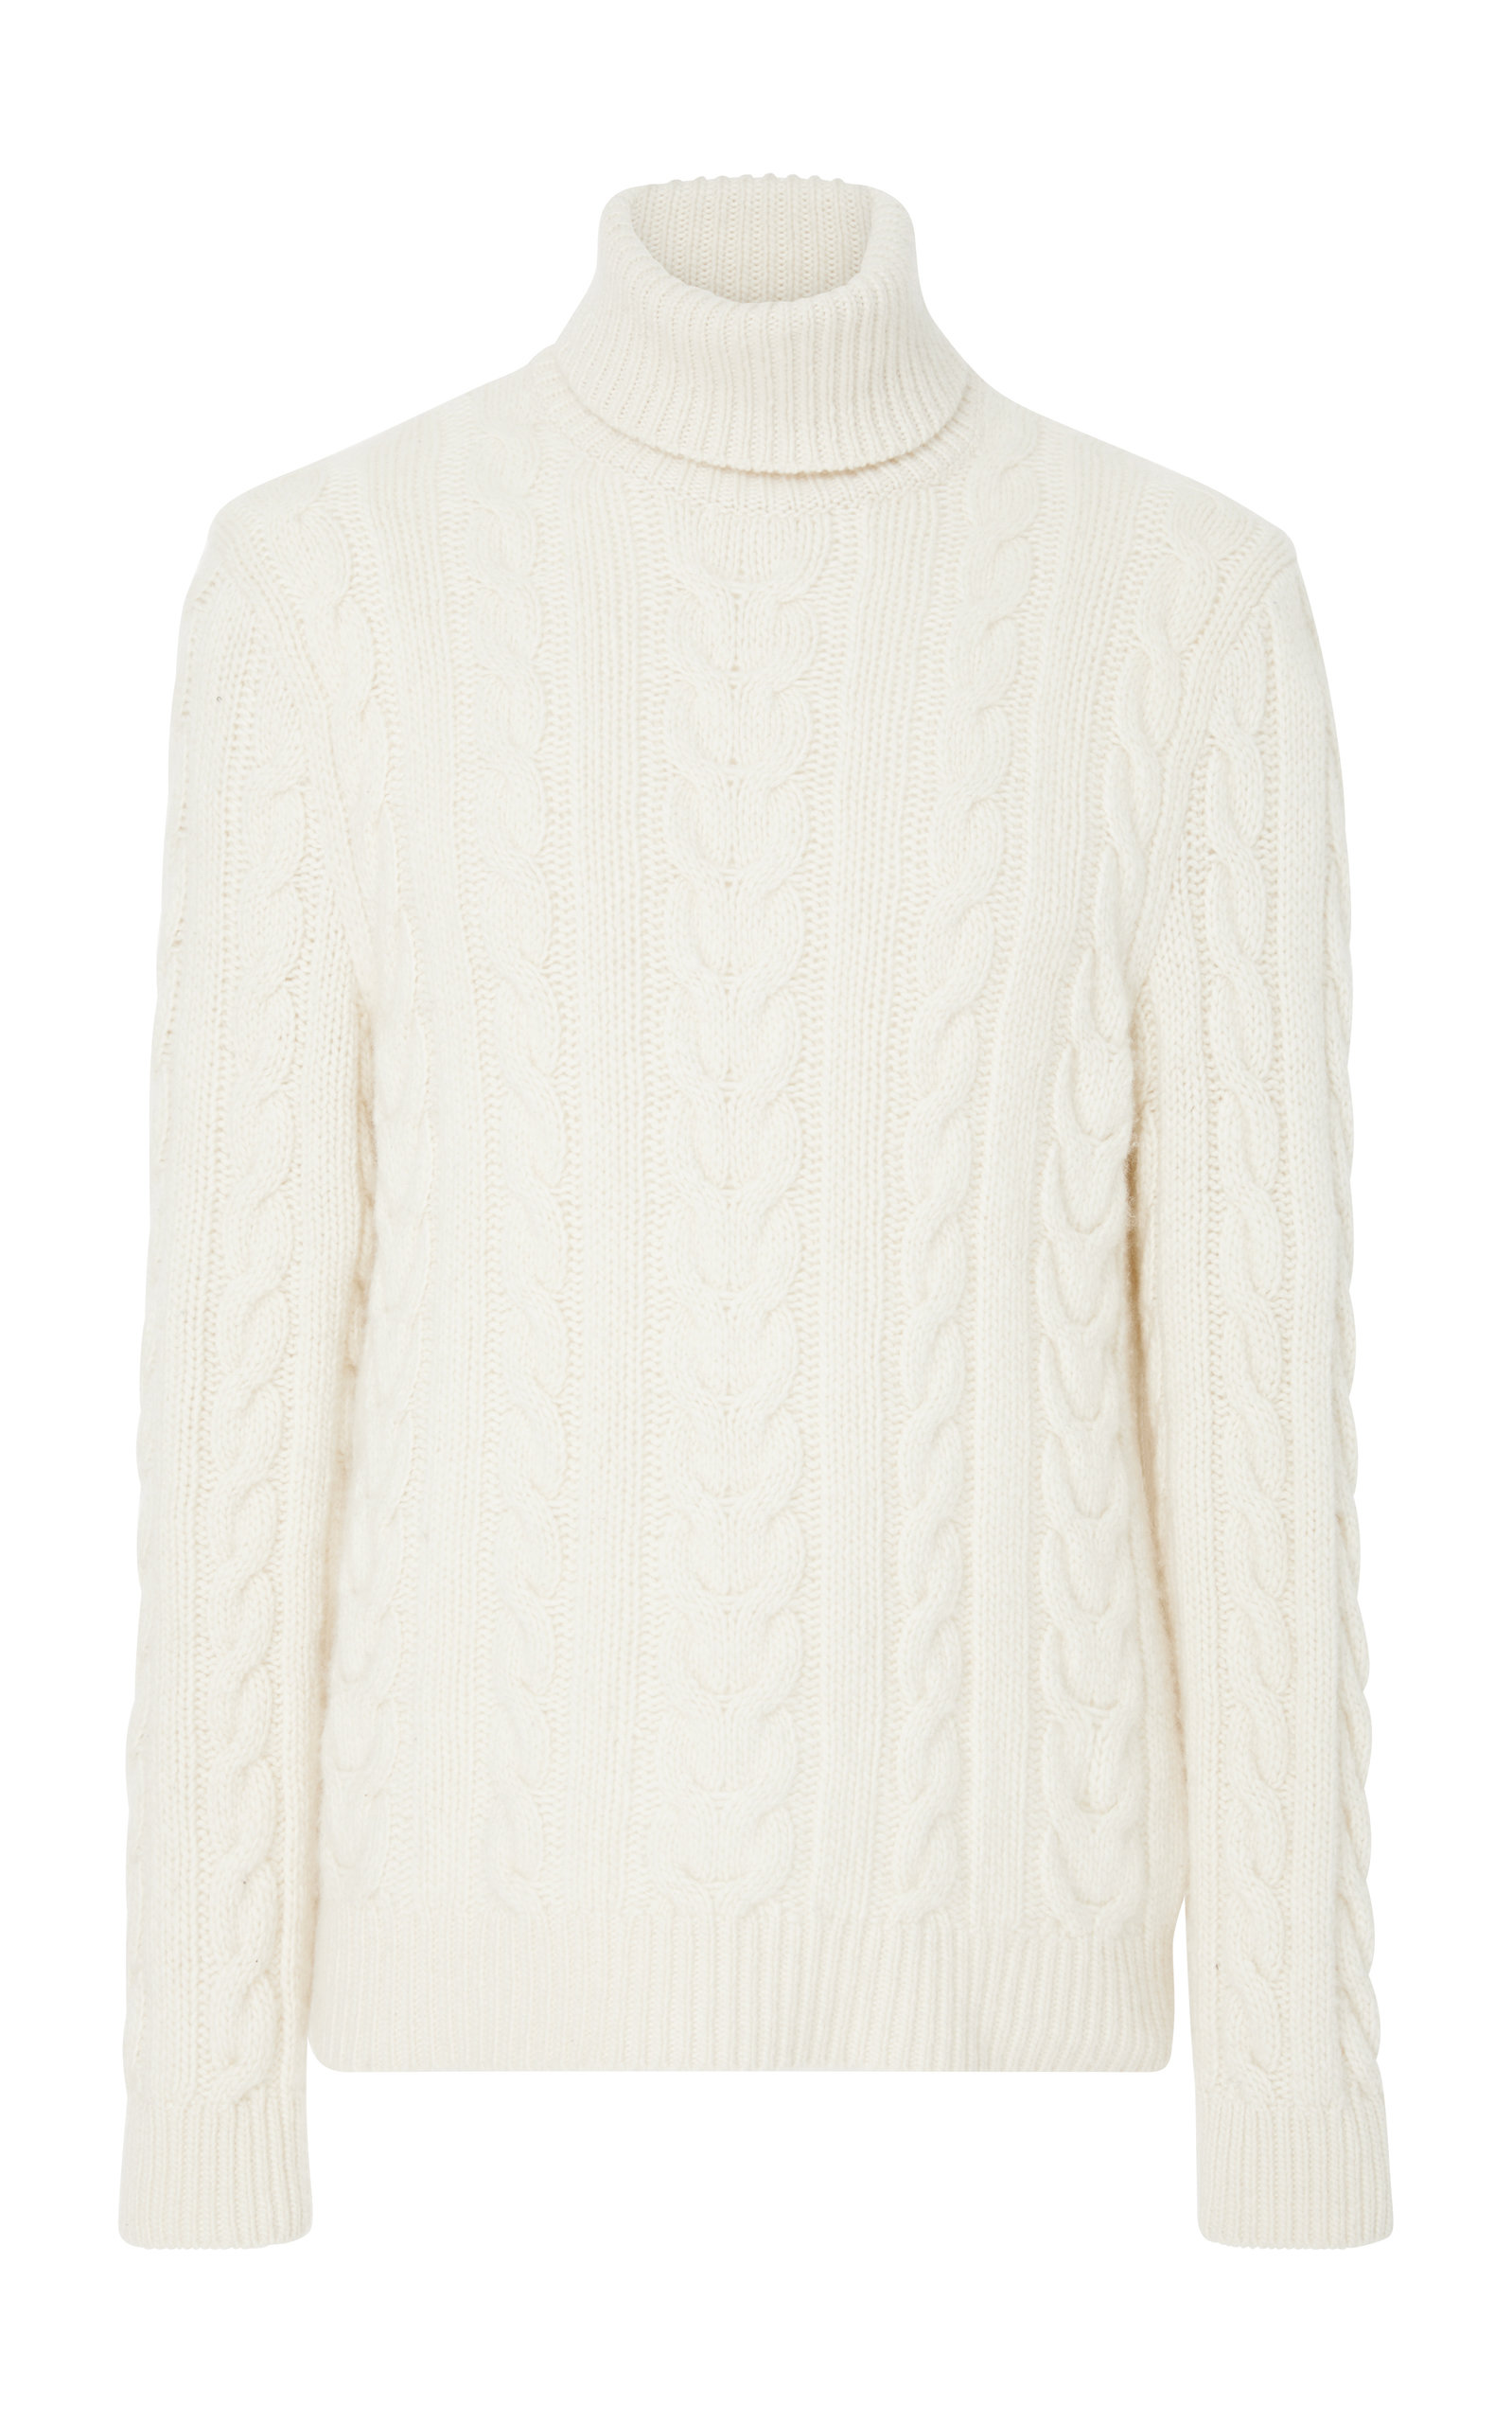 Ralph LaurenCable-Knit Cashmere Turtleneck Sweater. CLOSE. Loading 0936a416b